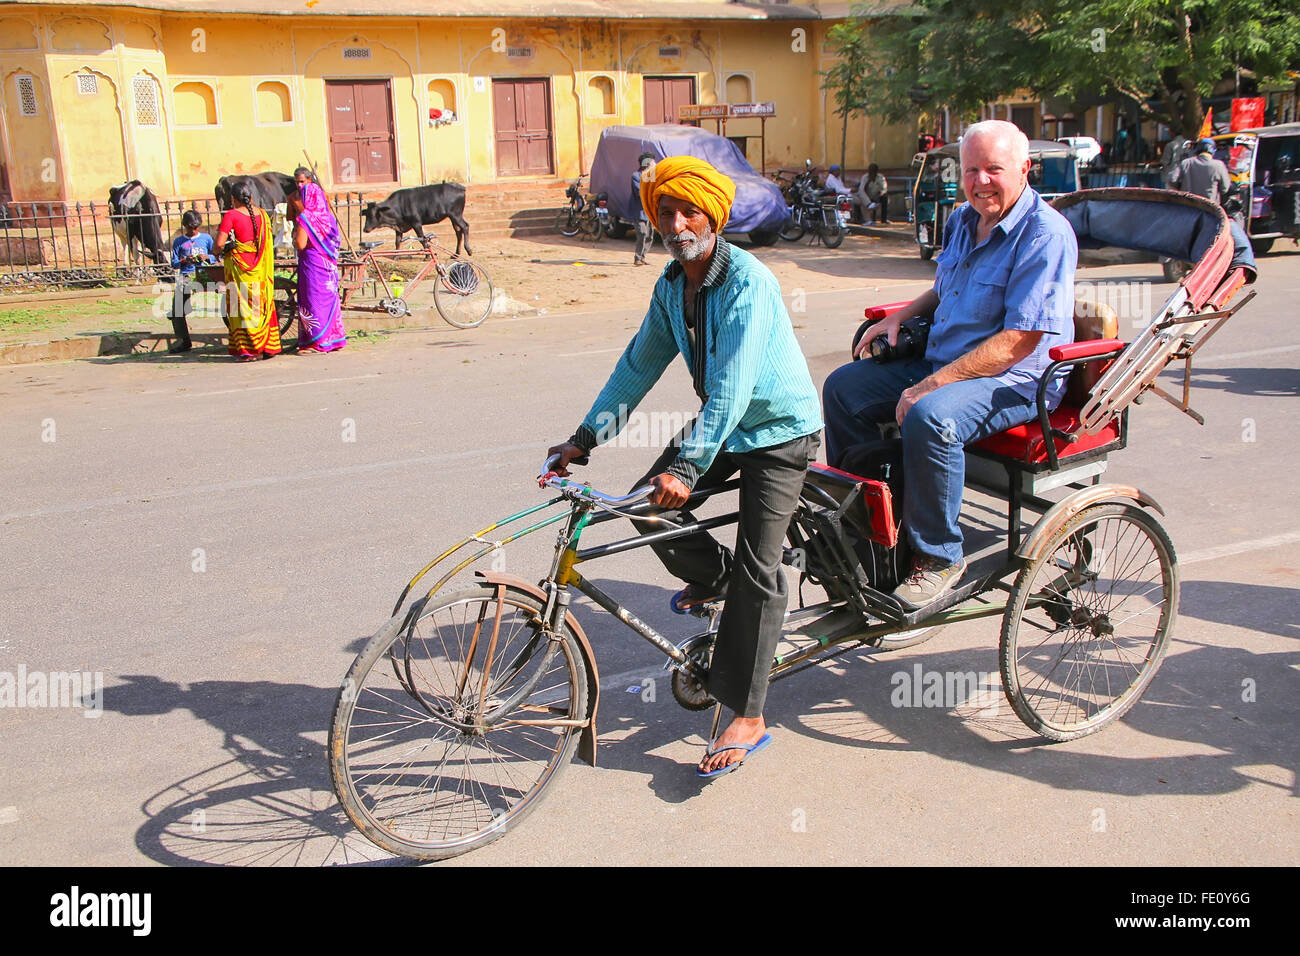 Cycle rickshaw near City Palace Chandra Mahal in Jaipur, India. Palace was the seat of the Maharaja of Jaipur, the - Stock Image